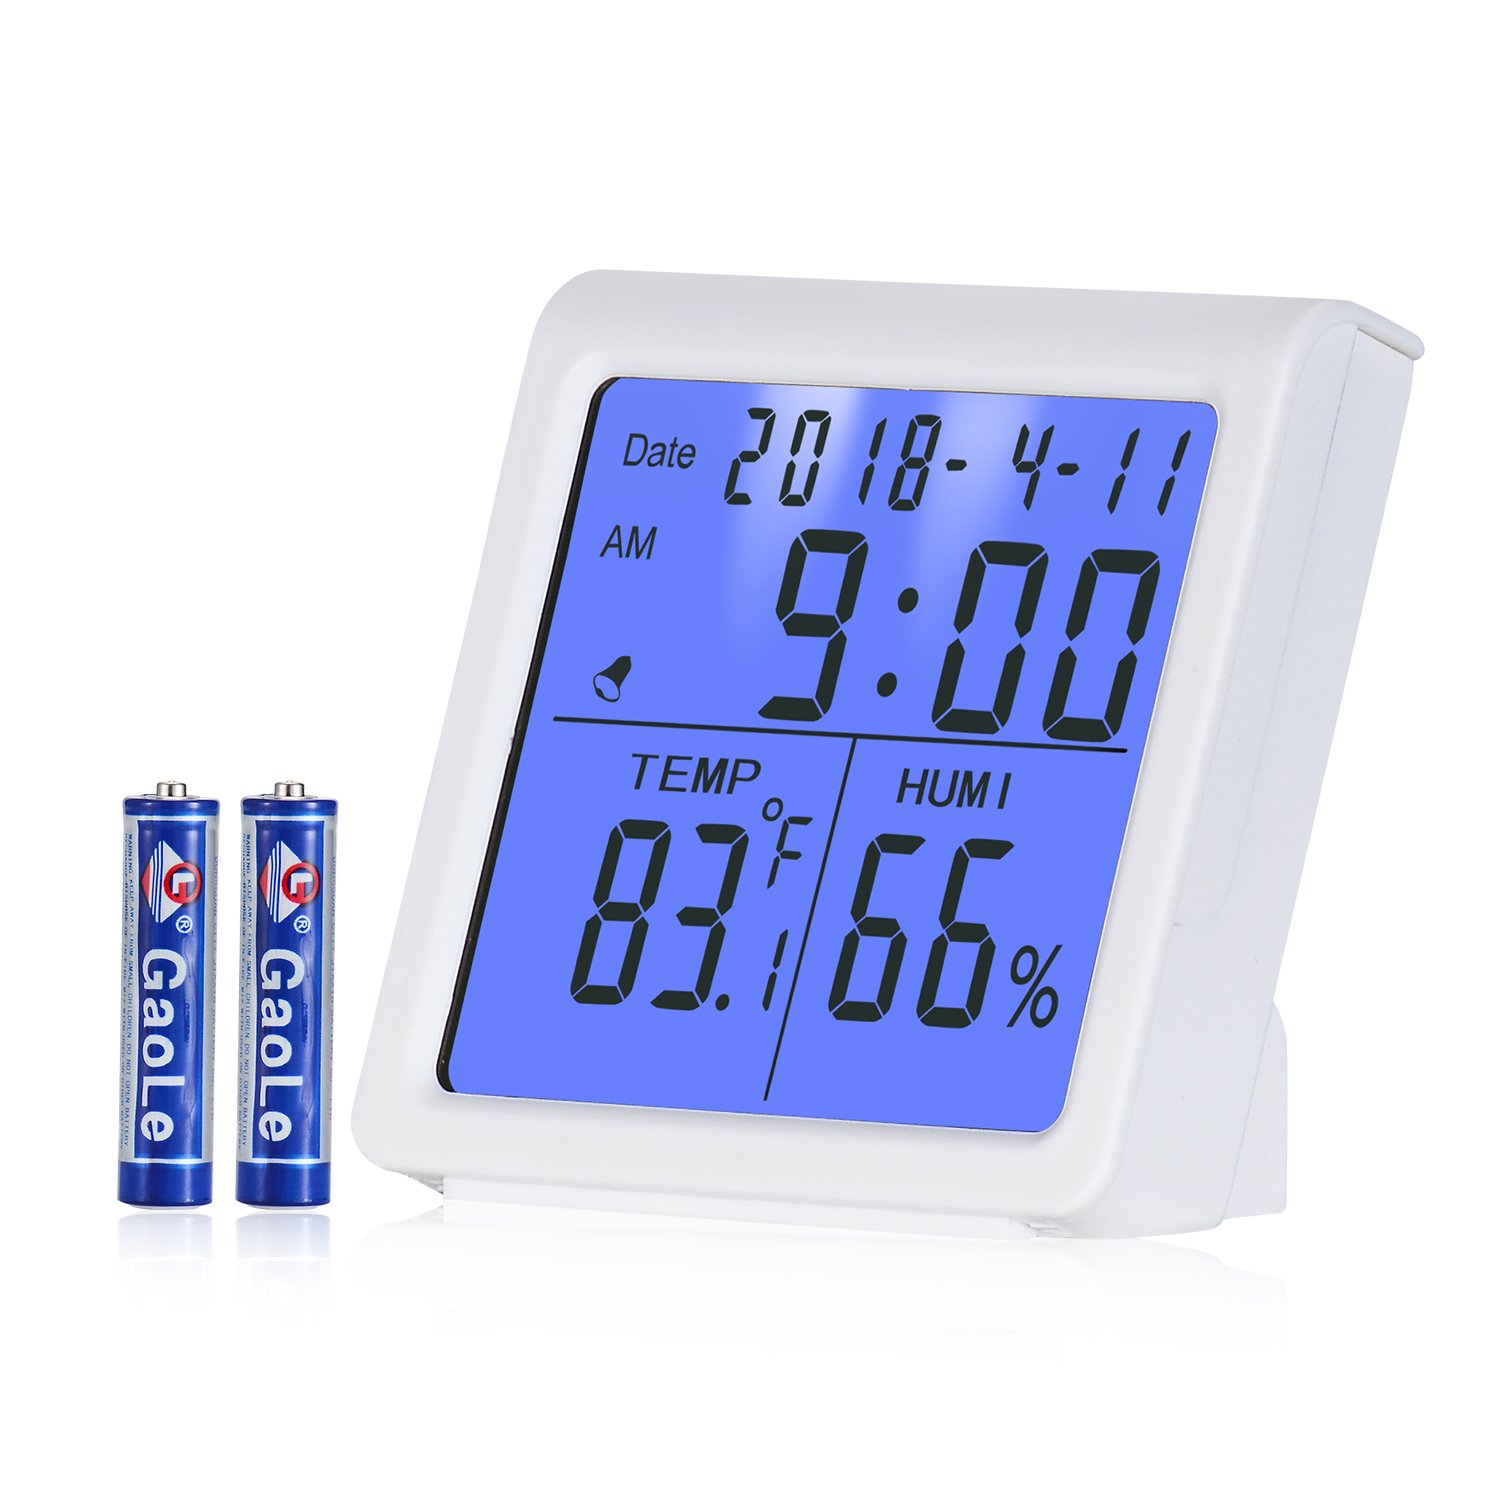 AE Life Temperature Humidity Gauge, Indoor Thermometer Hygrometer with Digital Alarm Clock, Backlit Accurate Monitor Clear Reading, Min/Max Records, °C/°F switch, Calendar, Time Display - White